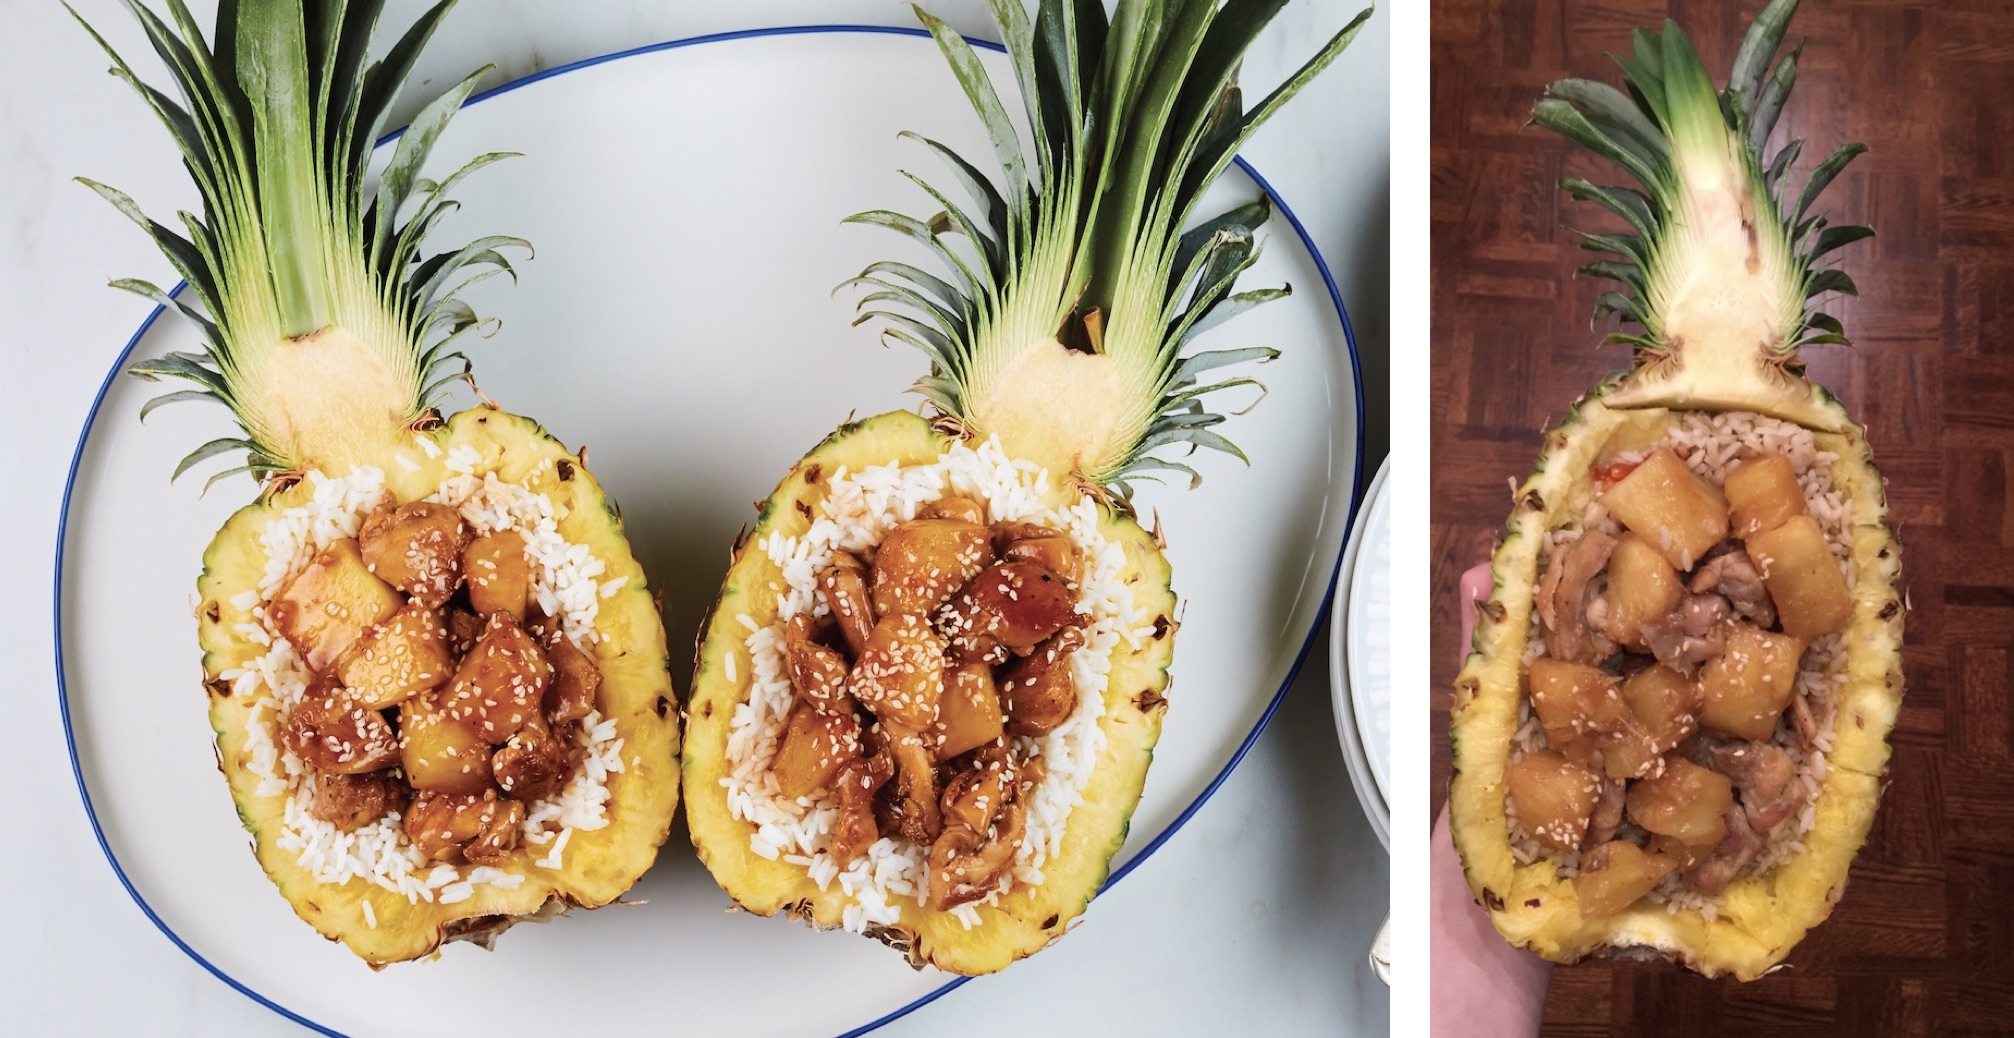 Chicken and rice-stuffed pinepples from the Tasty cookbook